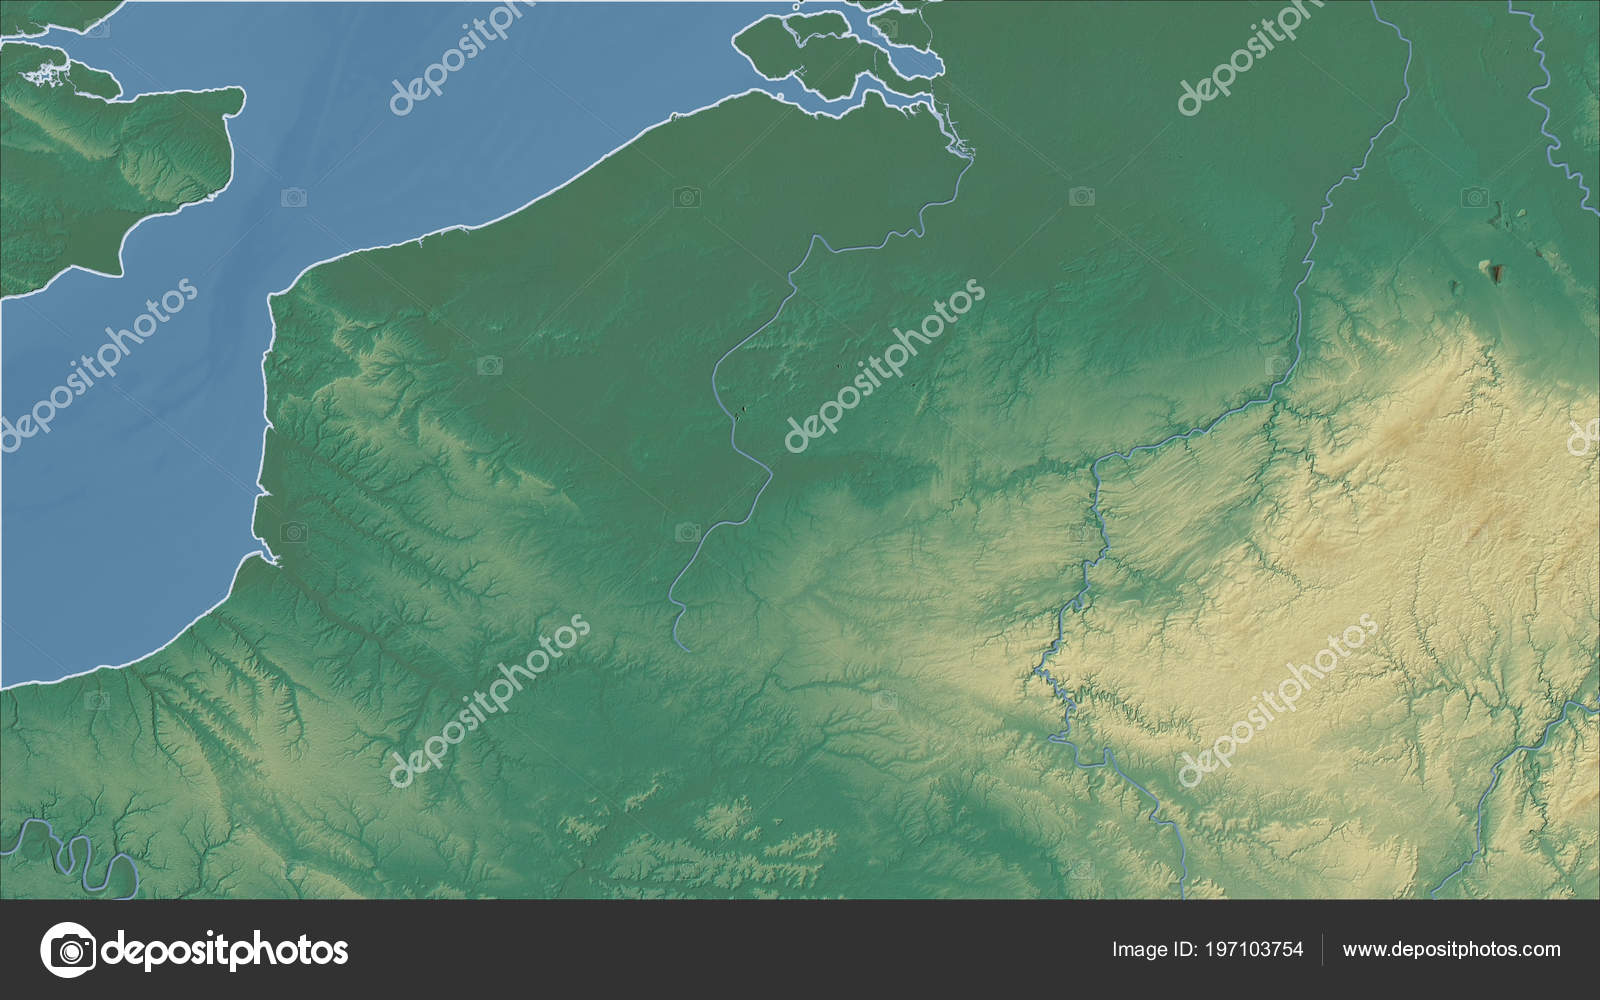 Belgium Topographic Map.Belgium Close Perspective Country Outline Topographic Relief Map